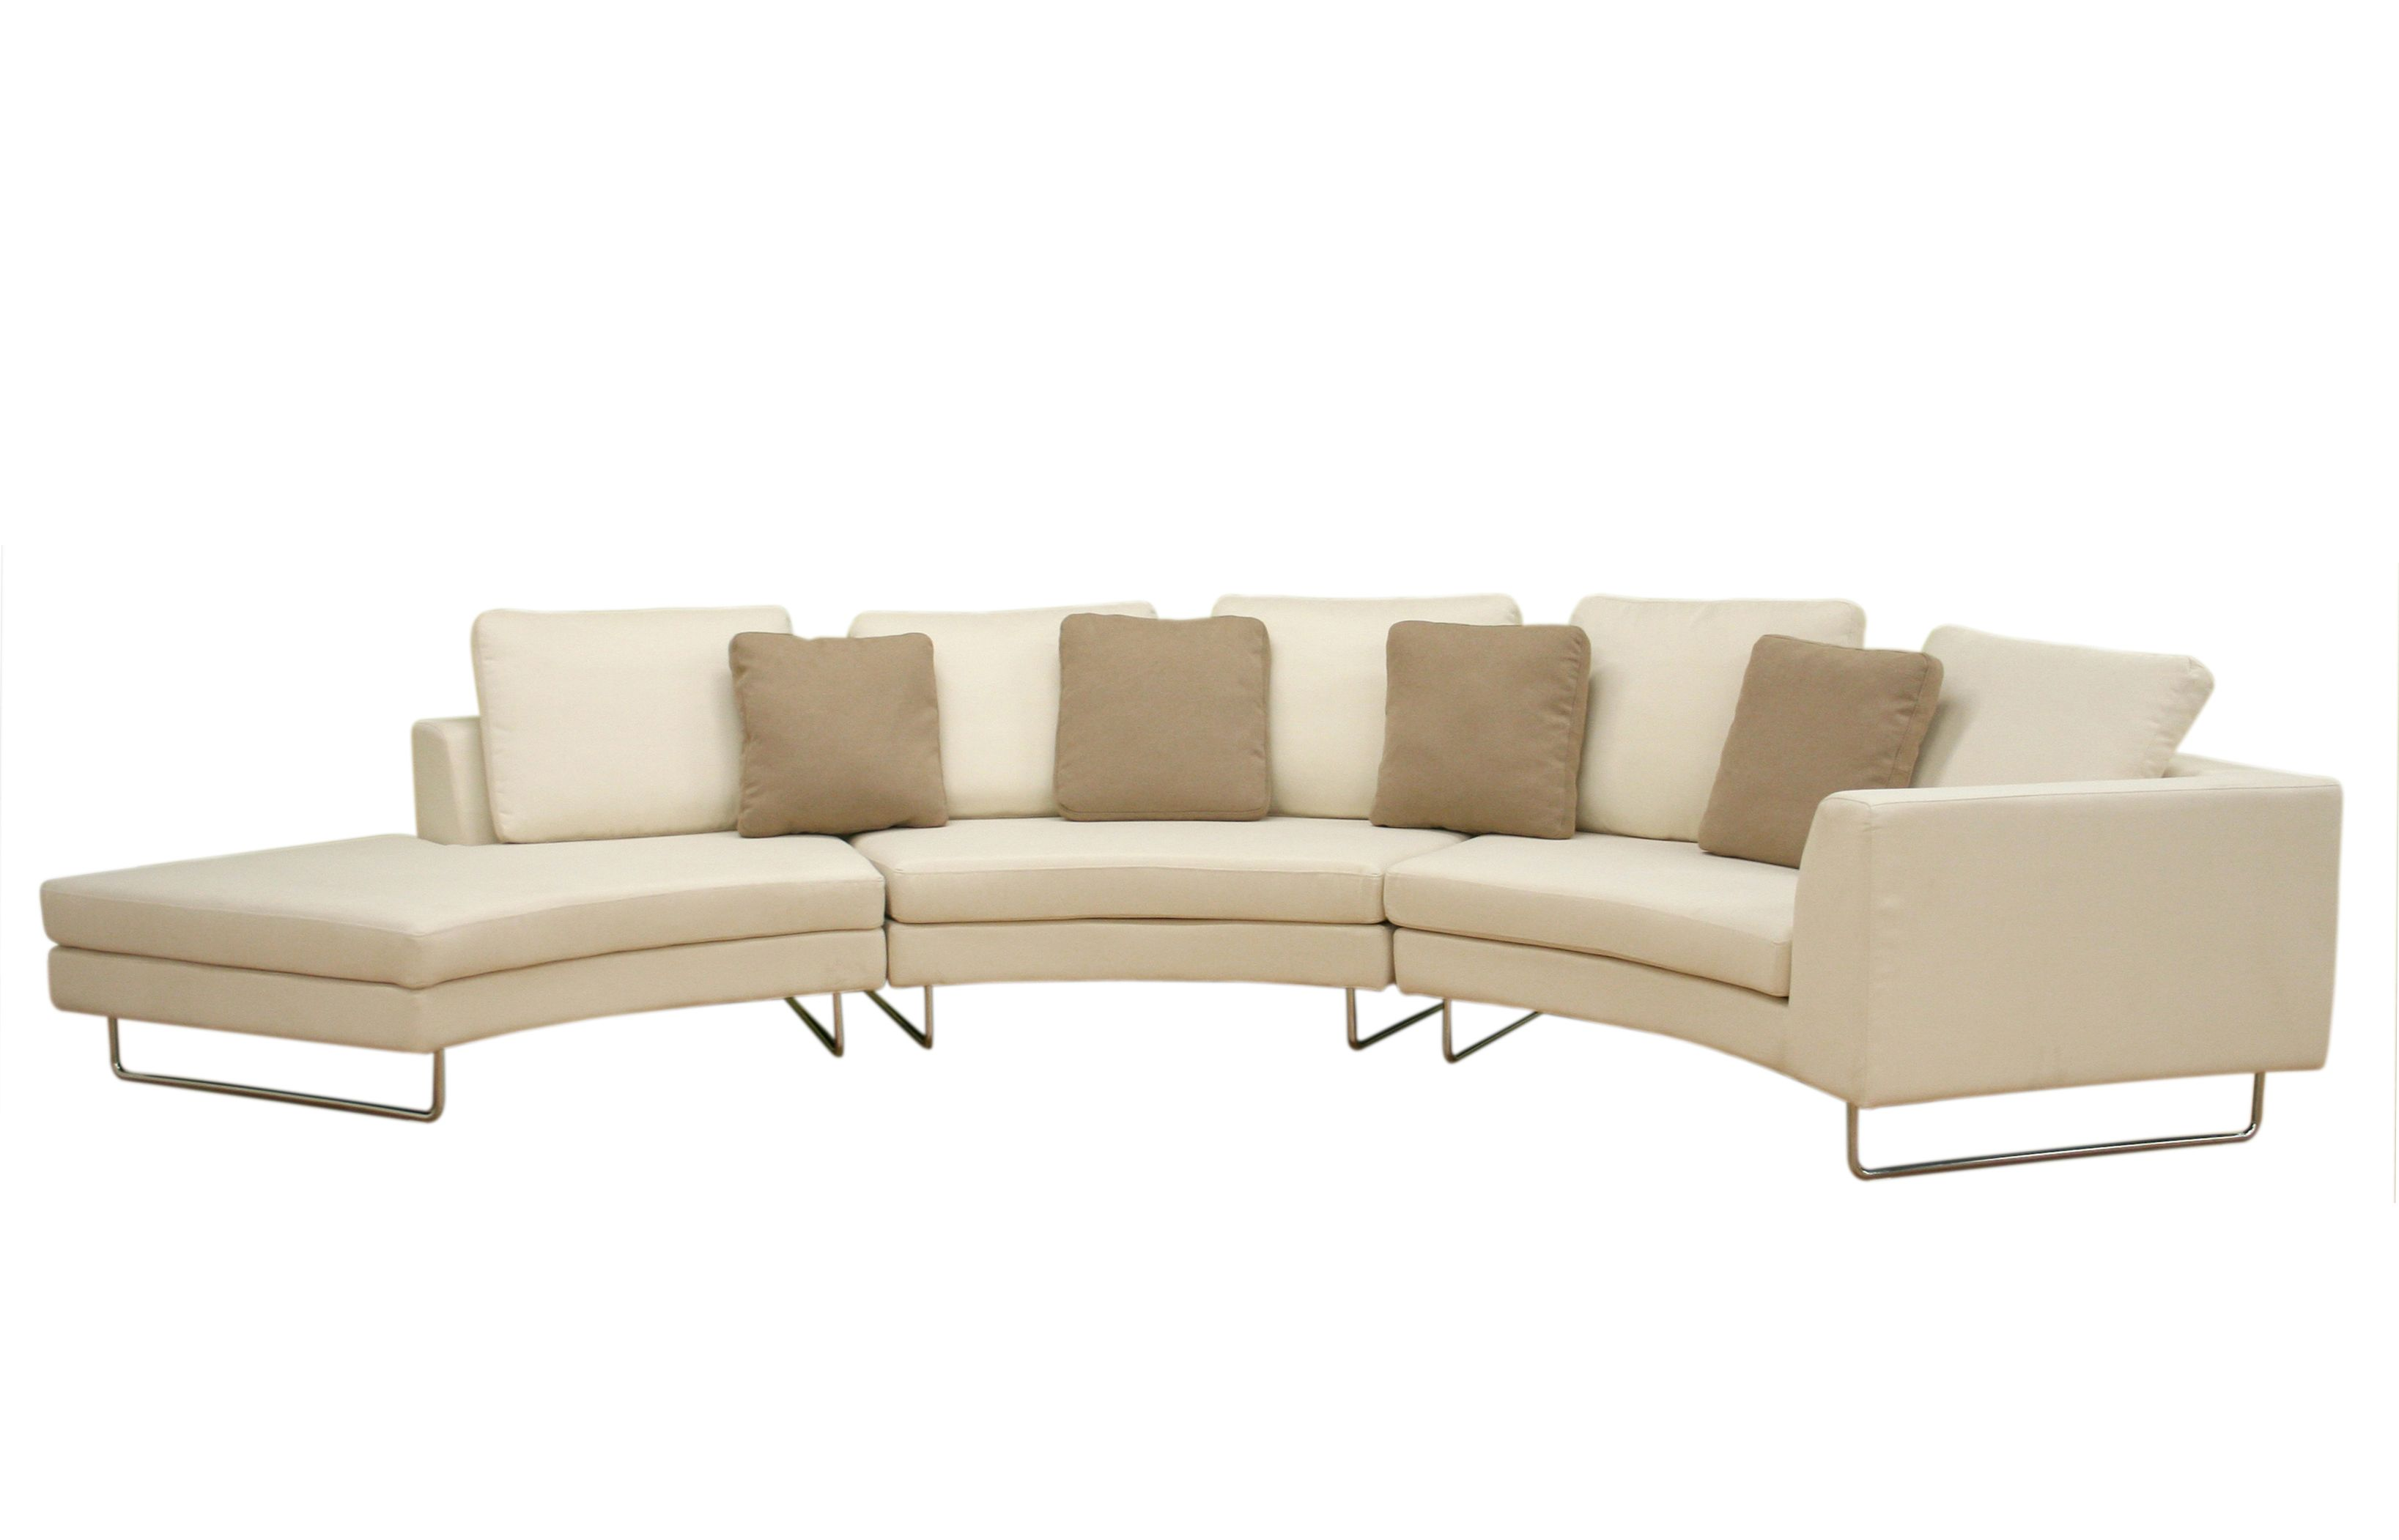 Large Round Curved Sofa Sectional Baxton Studio Lilia Curved 3 Piece Tan Fabric Modern